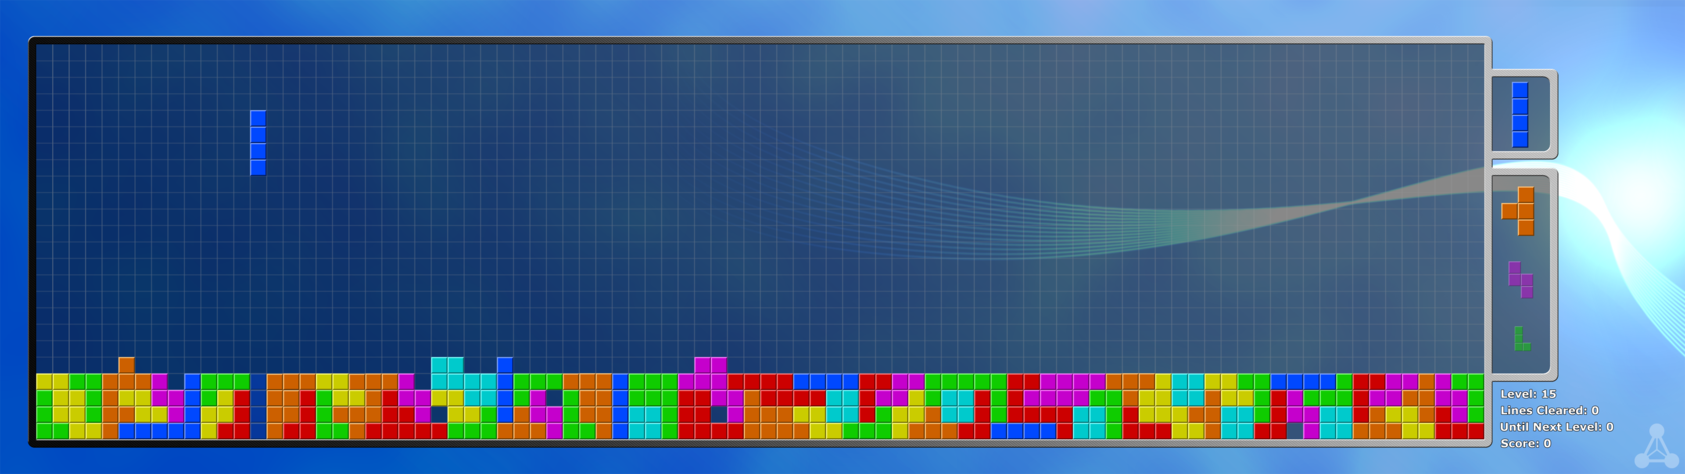 Zero Points   Tetris Dual Monitor Wallpaper by AlpheusRGB on 1685x474